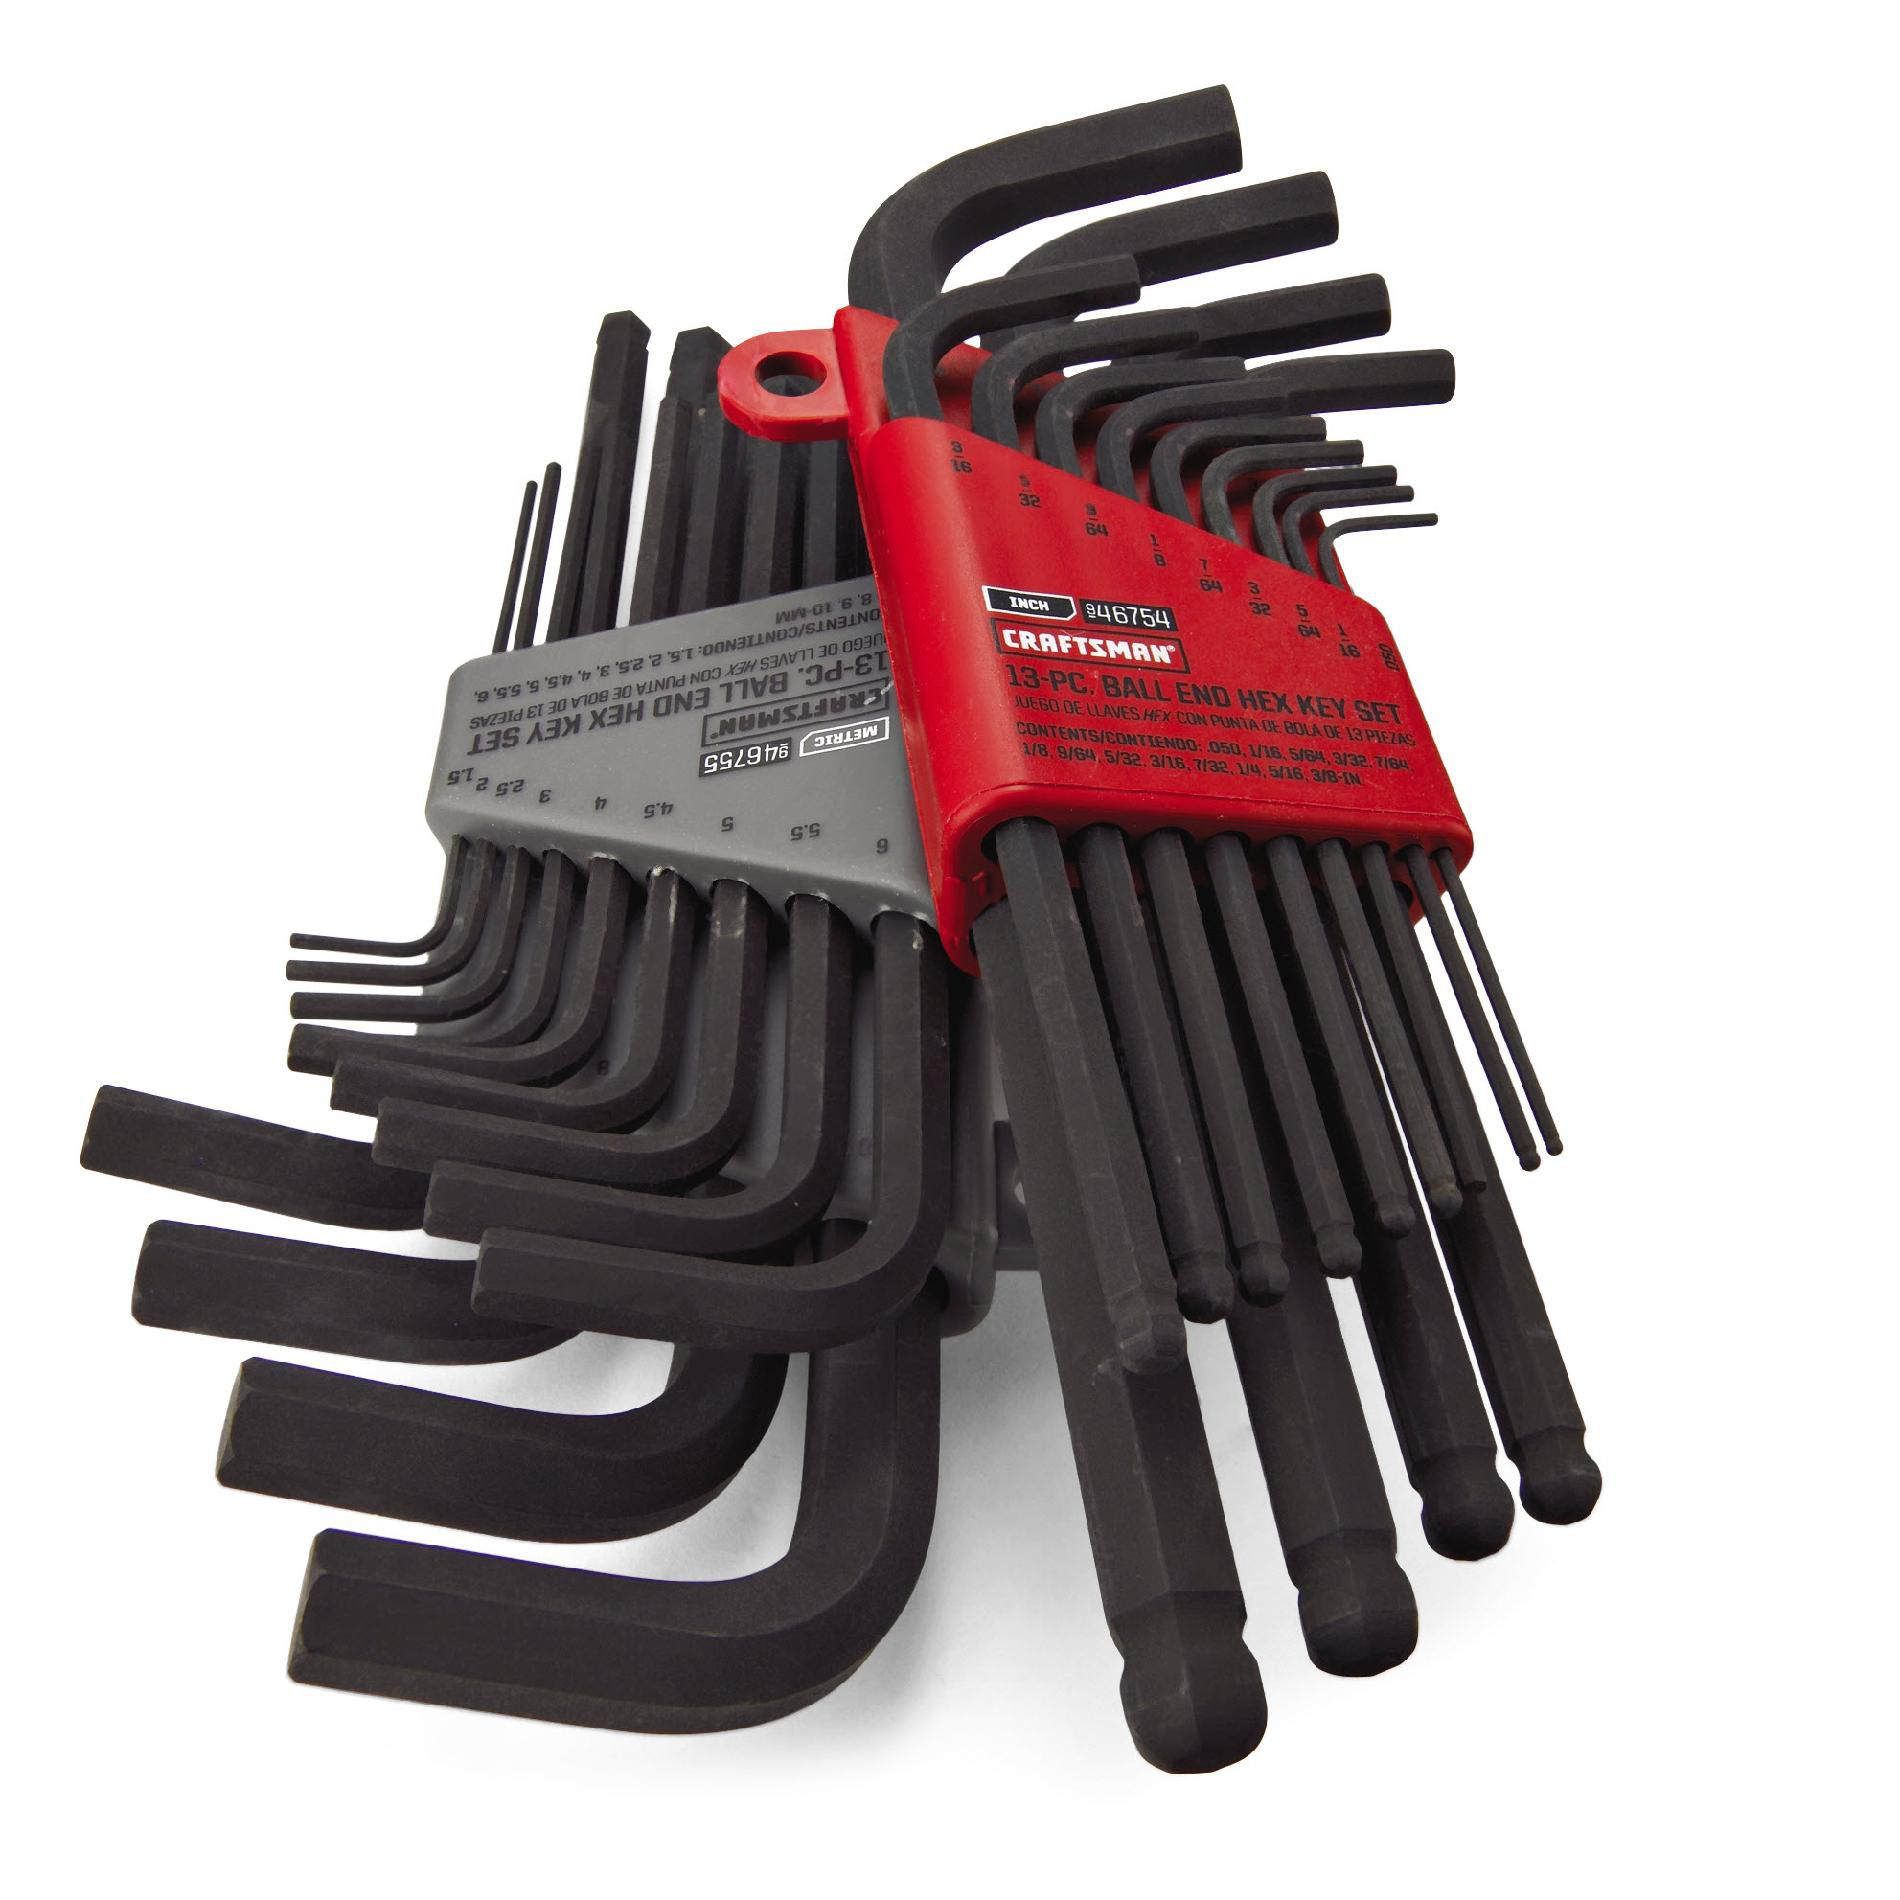 Craftsman 26 pc. Standard and Metric Ball End Hex Key Set